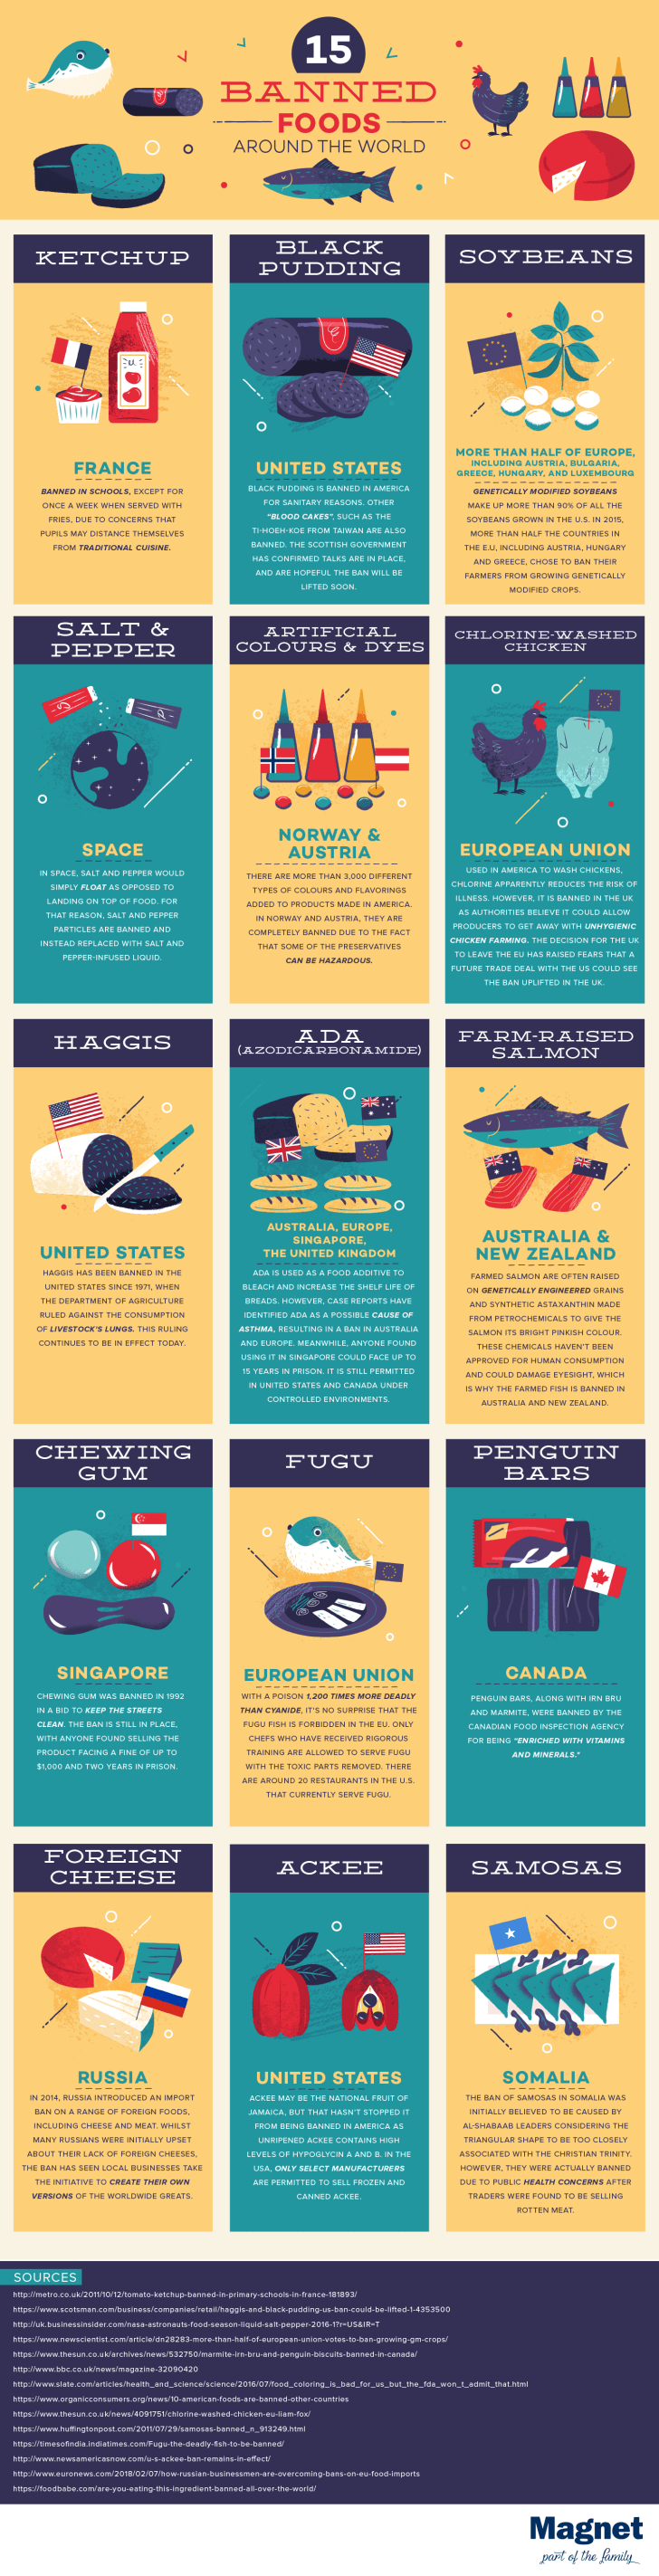 An infographic showing foods that have been banned around the world